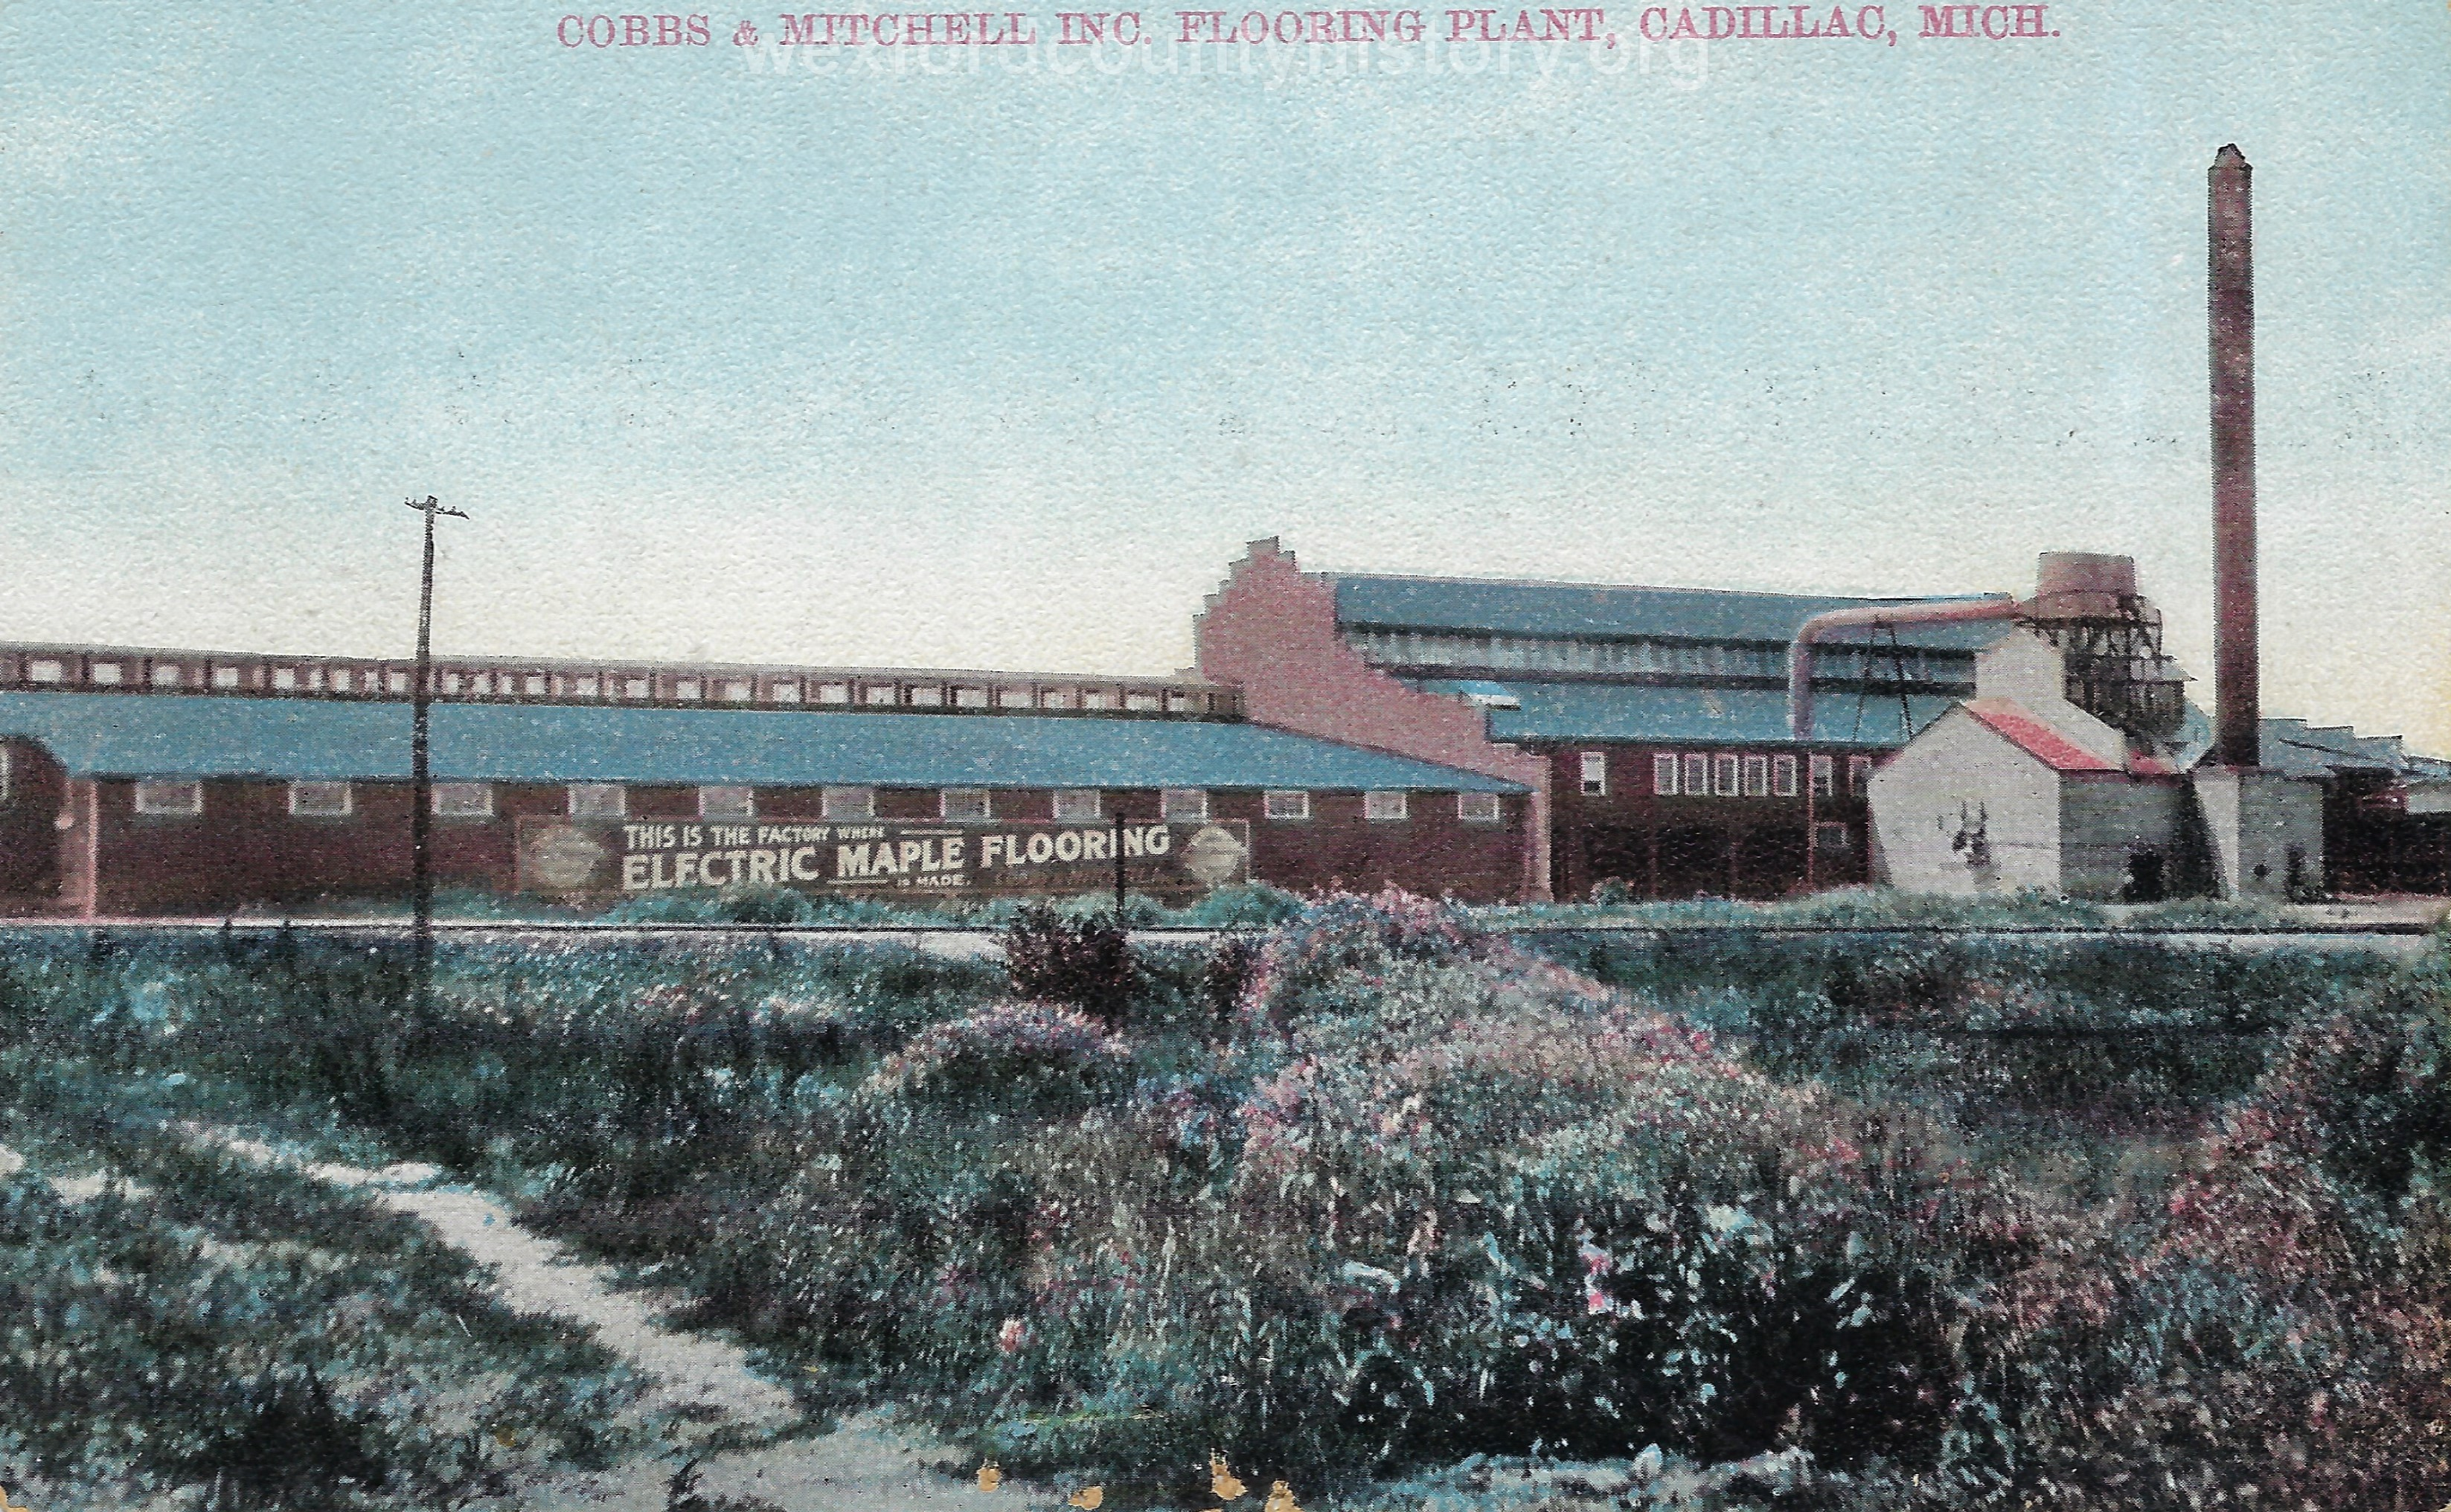 Cobbs and Mitchell Flooring Plant